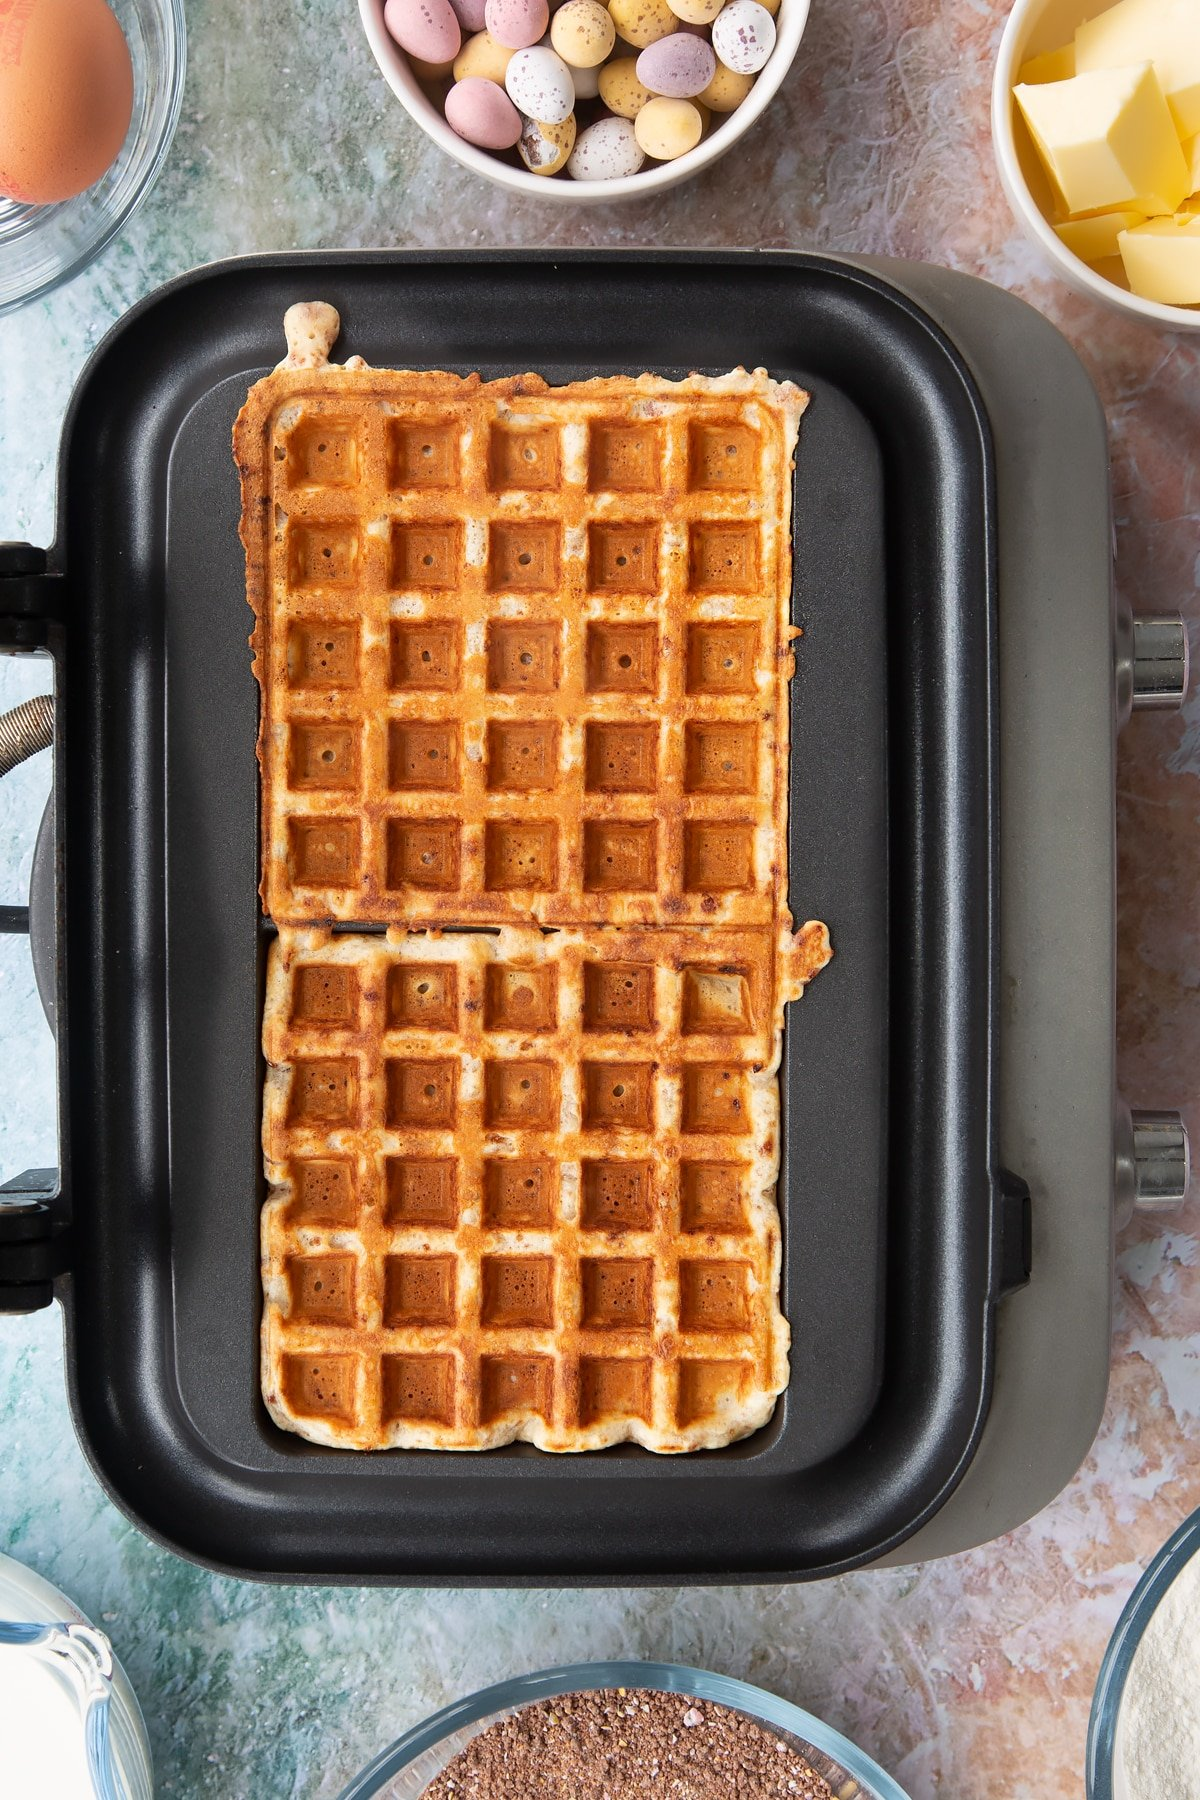 Mini Egg waffles, freshly cooked in a waffle maker.